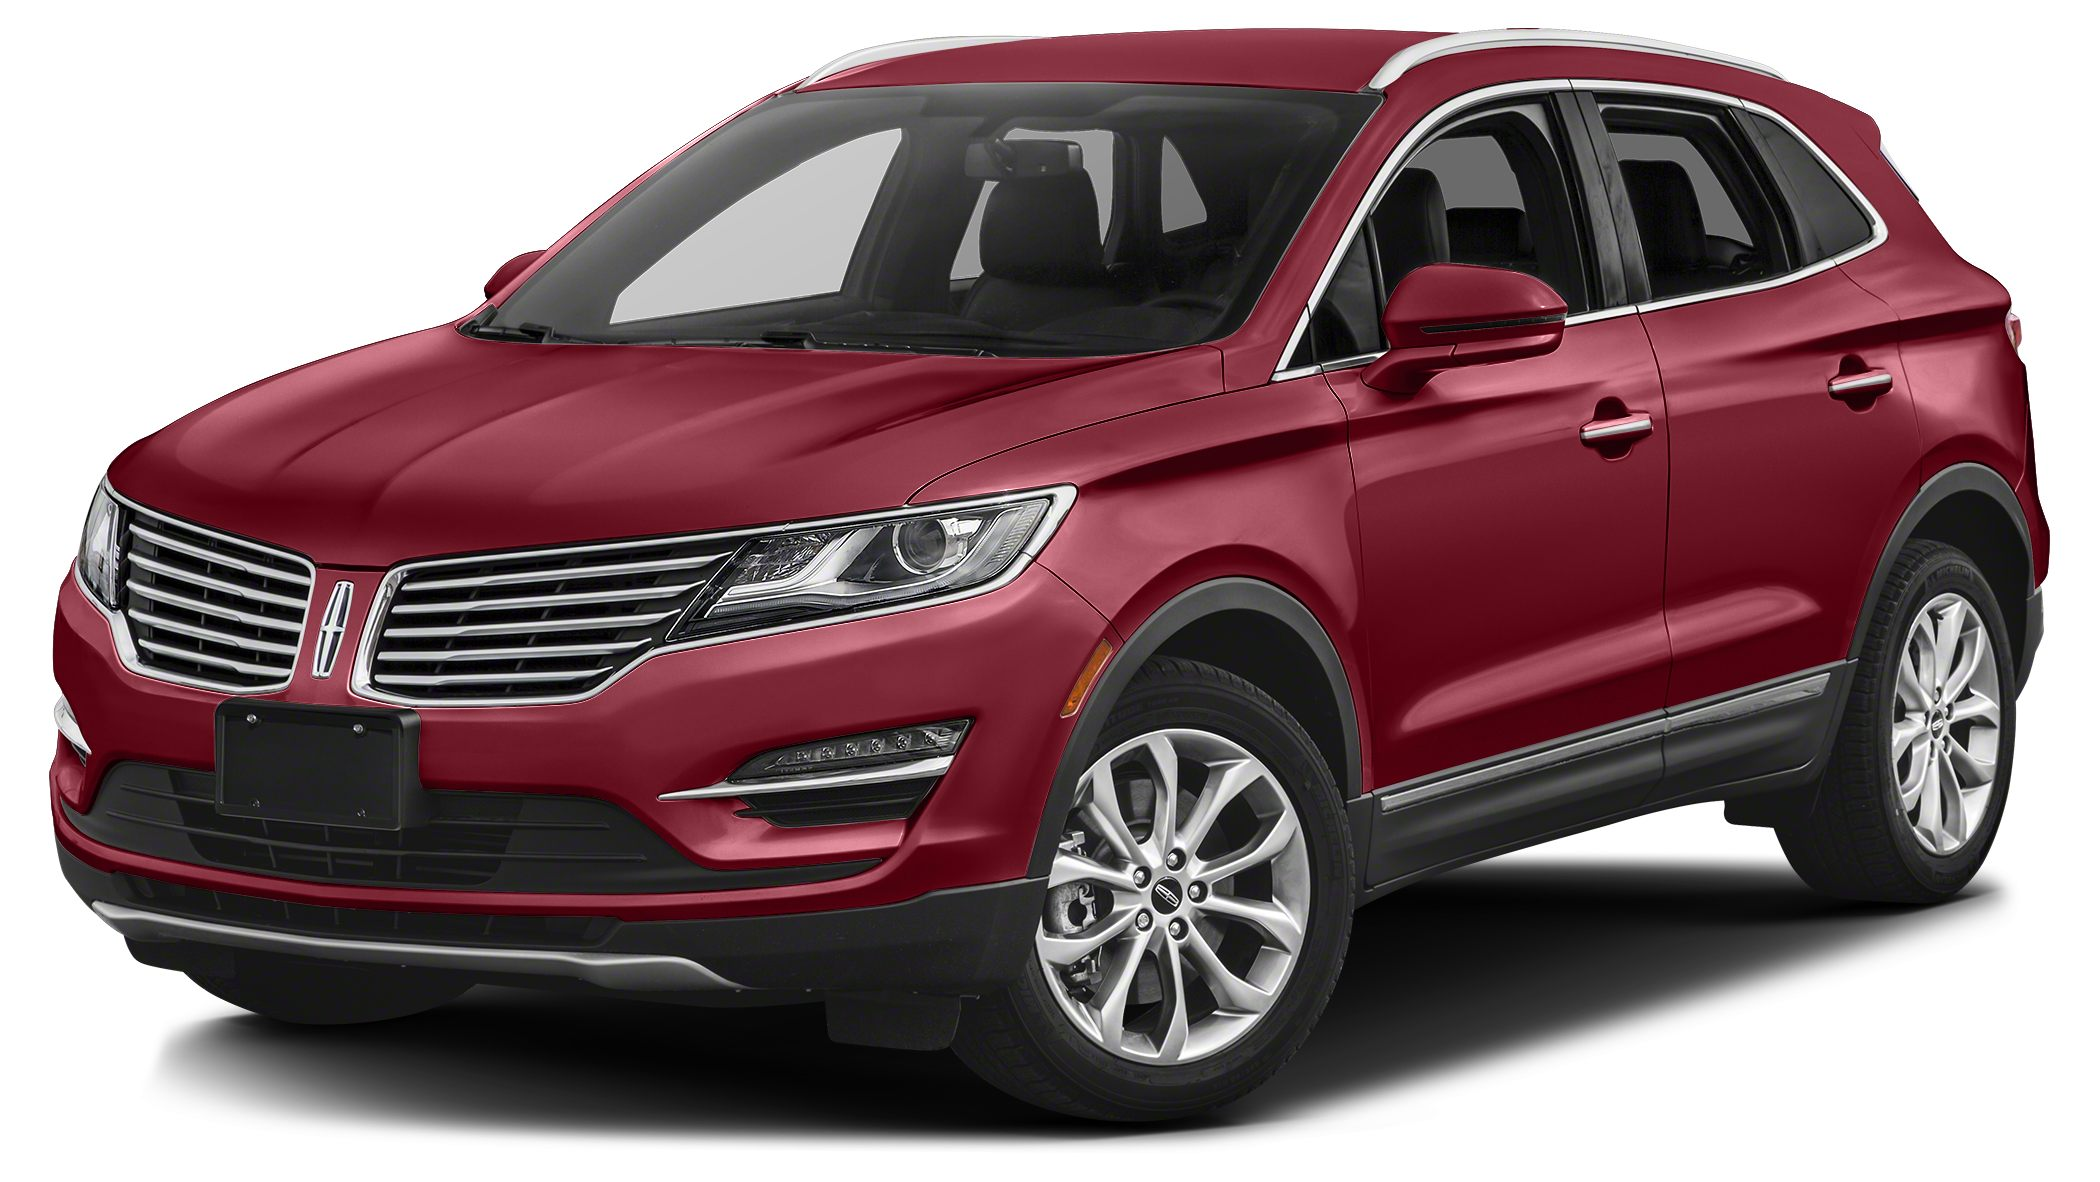 2017 Lincoln MKC Reserve Miles 6Color Ruby Red Metallic Tinted Clearcoat Stock 17C71 VIN 5LM